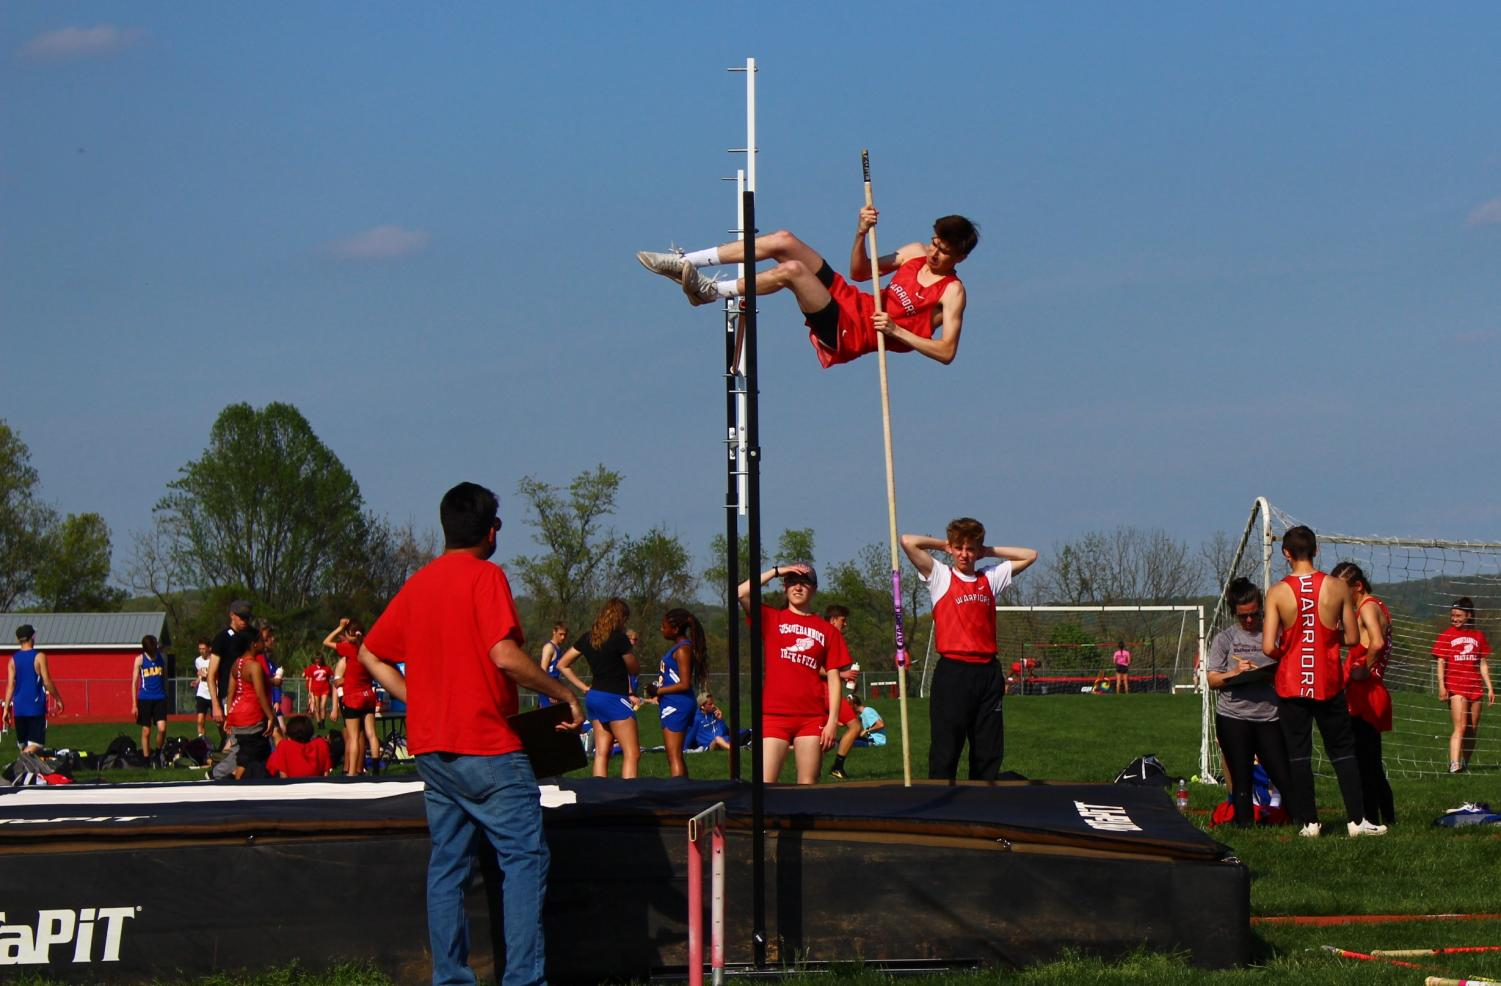 Junior+Duncan+McQuay+competes+in+the+pole+vault+in+the+meet+against+Kennard-Dale.+%0ASenior+Michael+Boampong+won+the+pole+vault+competition+in+the+meet+with+Kennard-Dale+with+a+jump+of+12%273%22.